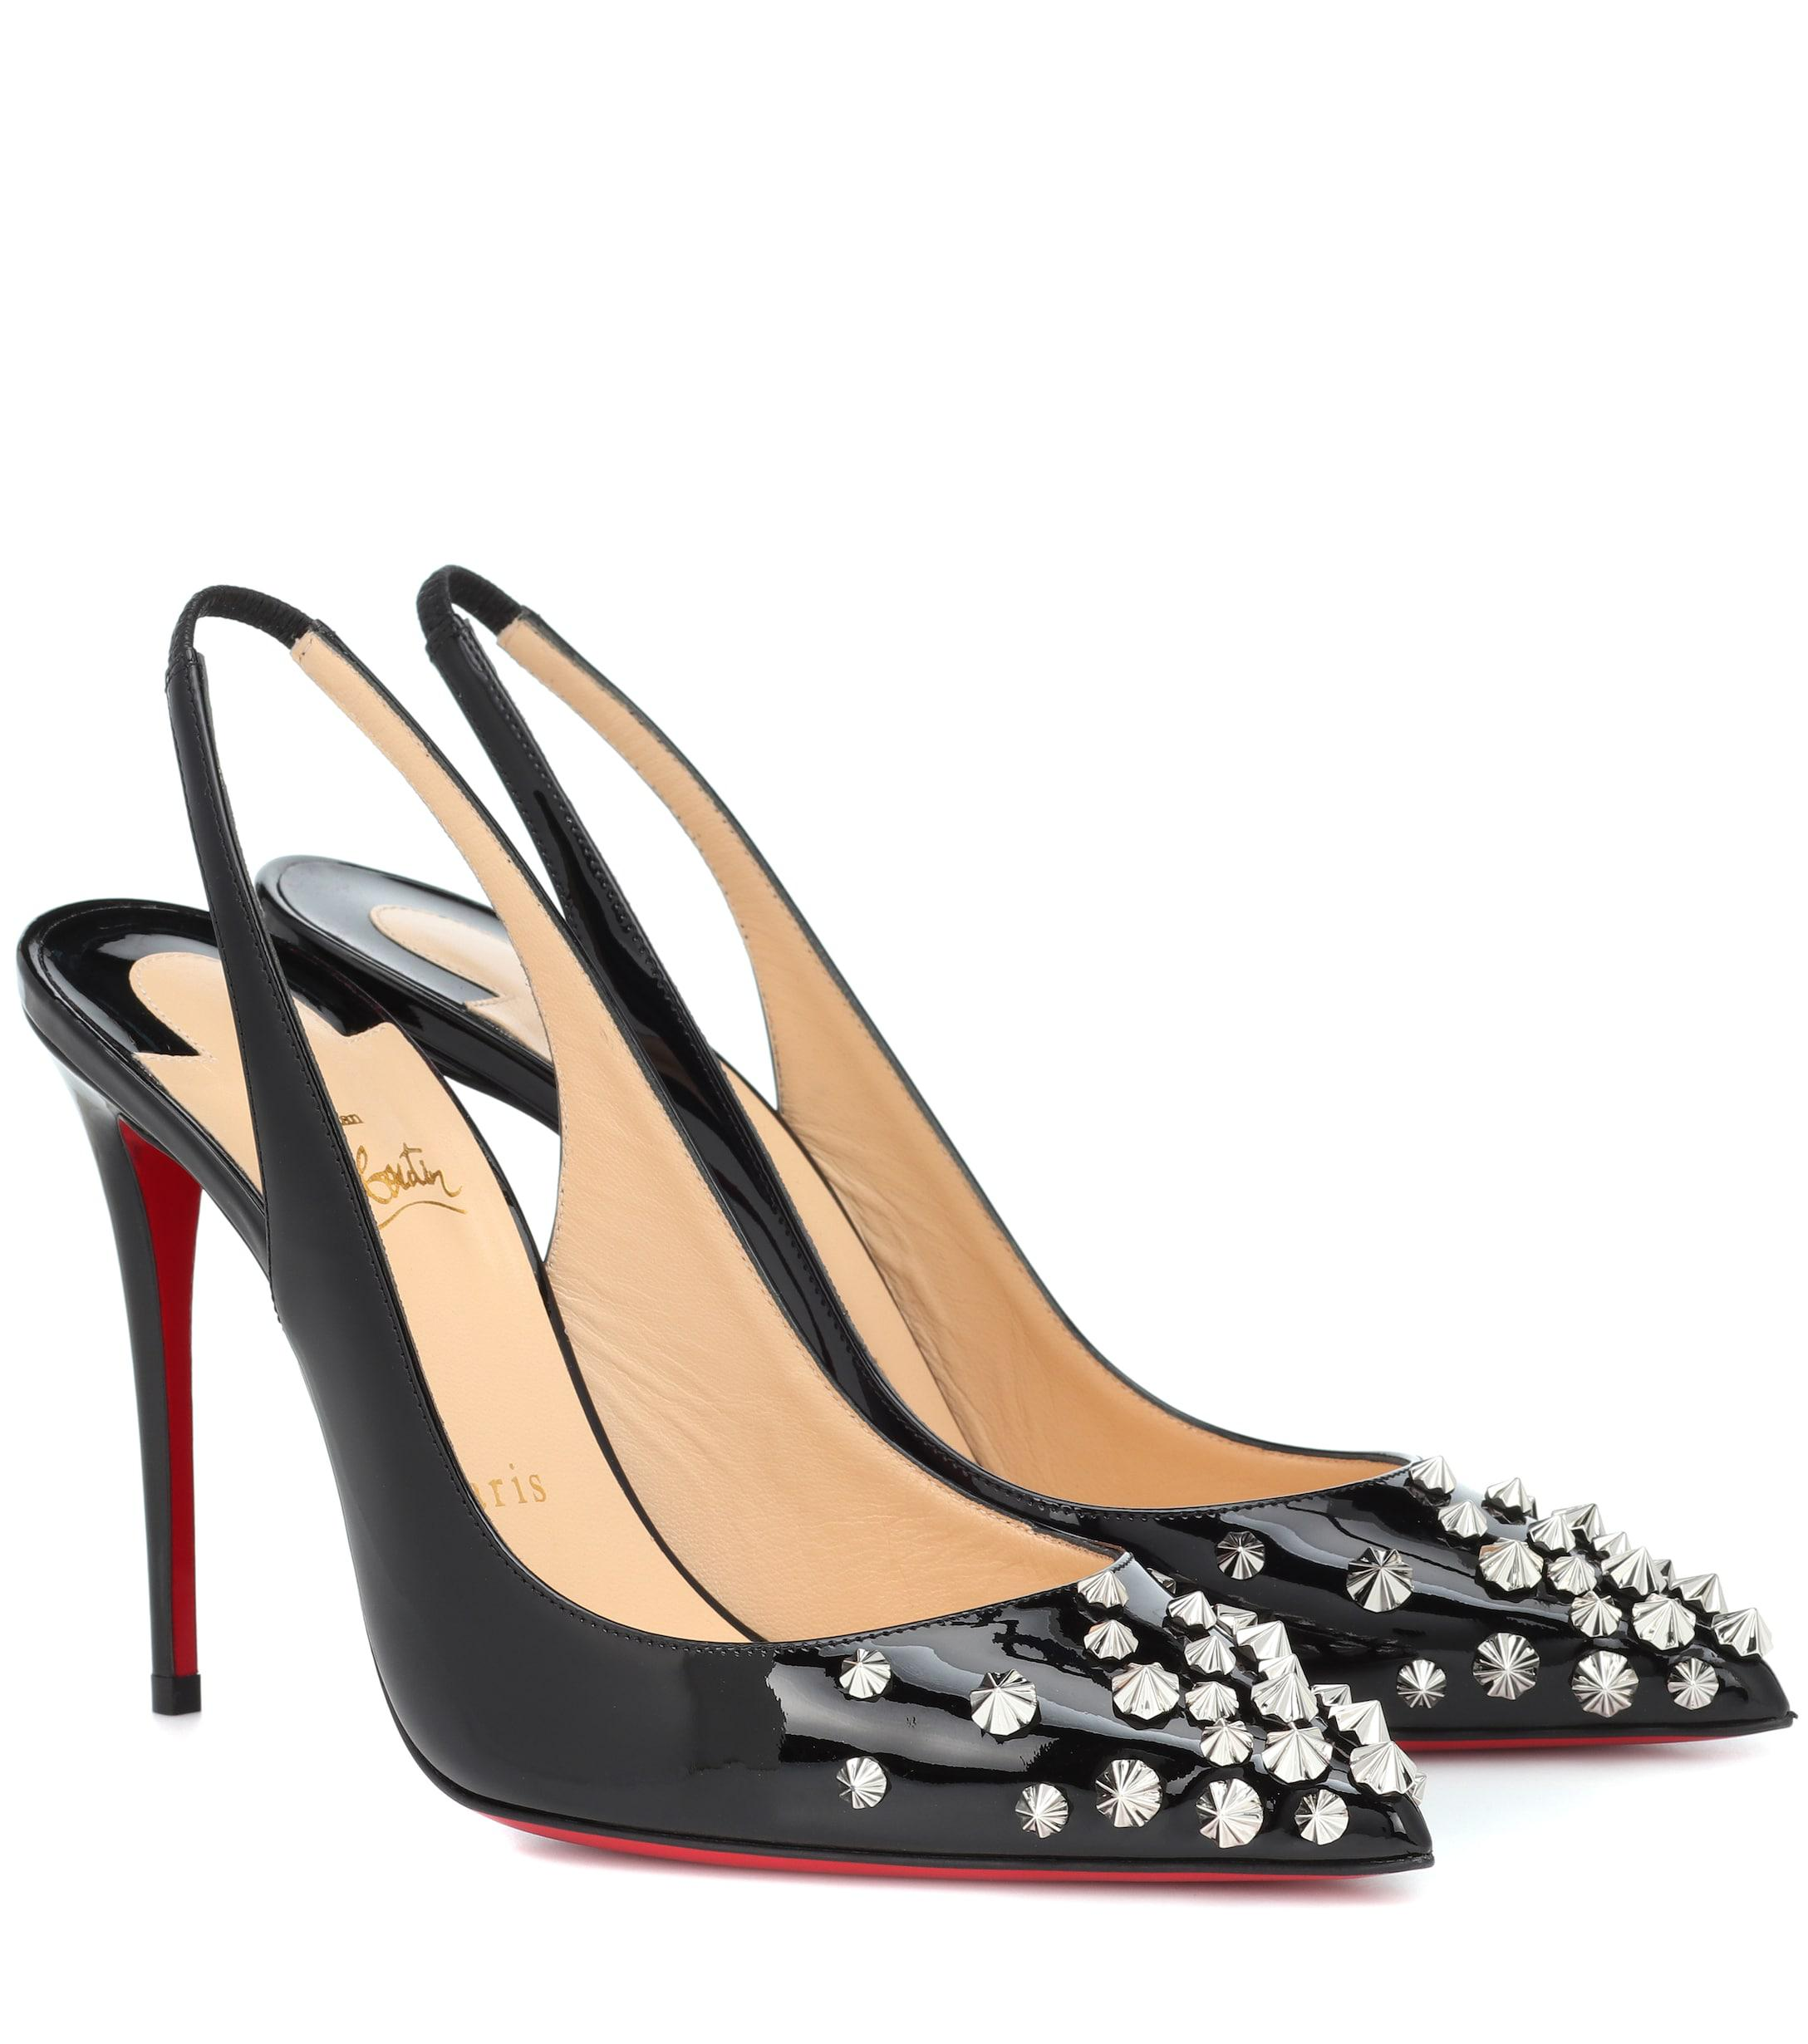 2e9f7b8673d1 Christian Louboutin Drama Sling 100 Patent Leather Pumps in Black - Lyst